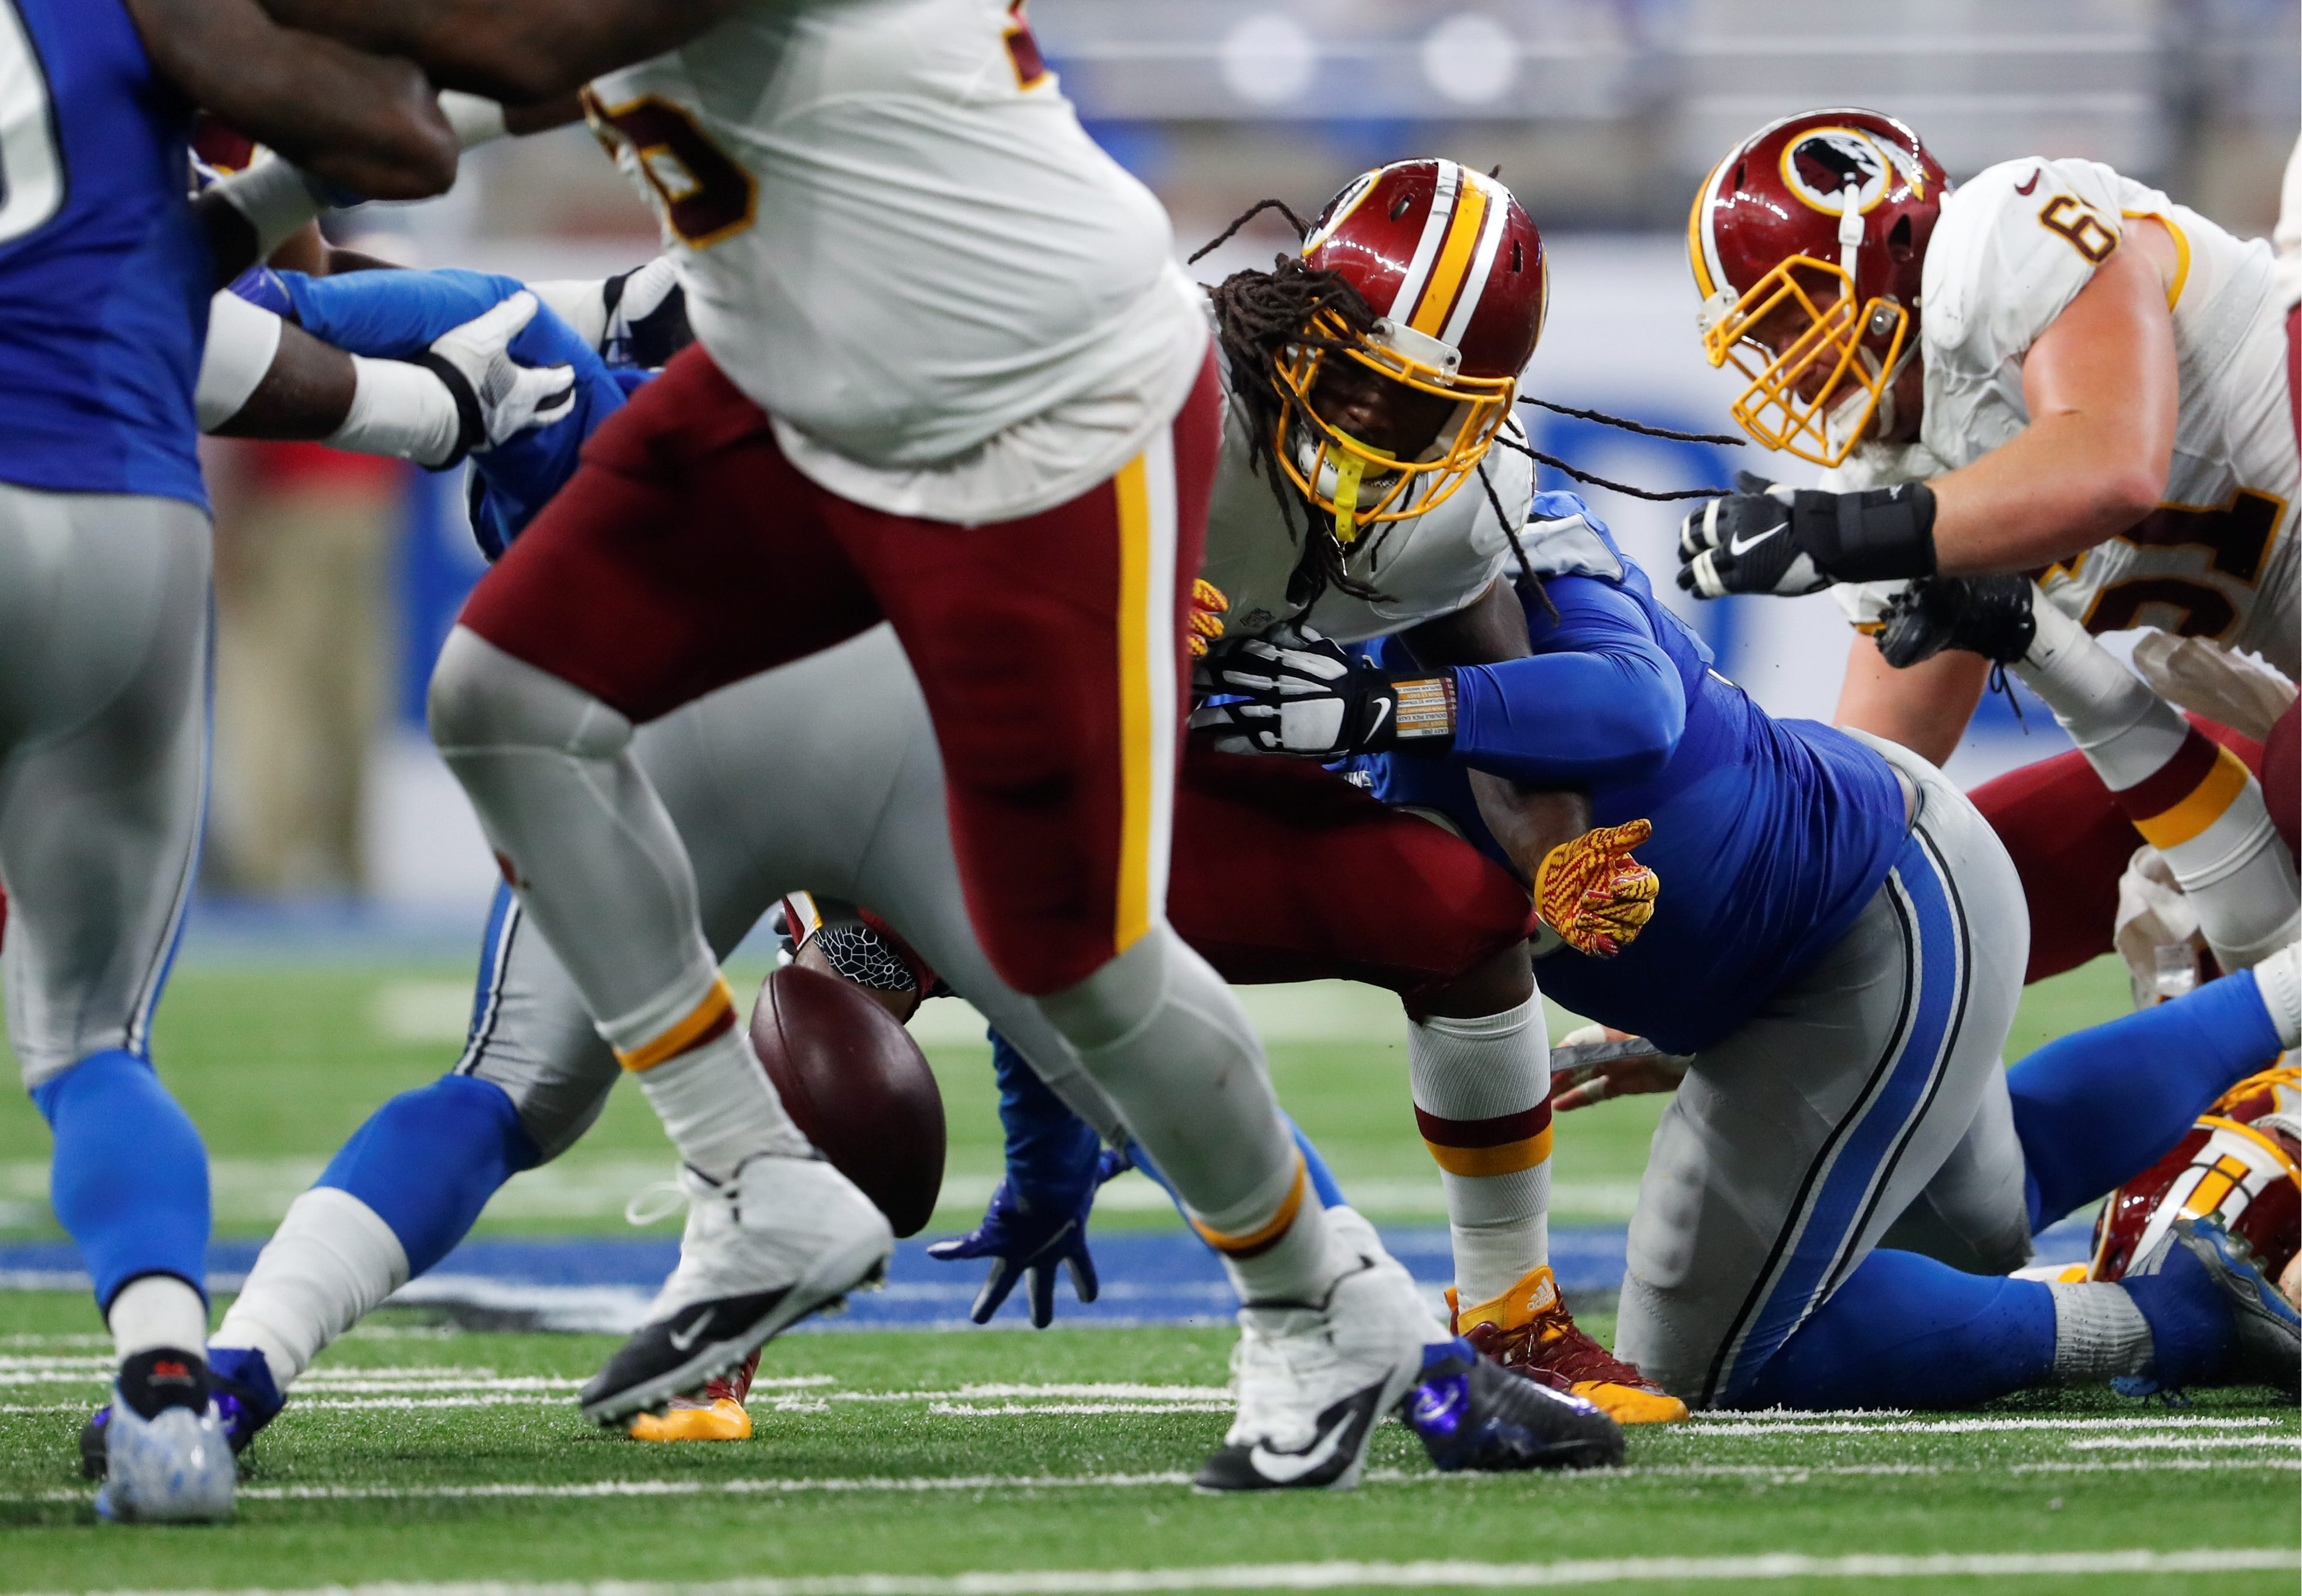 10232016_redskins-lions-football-618201